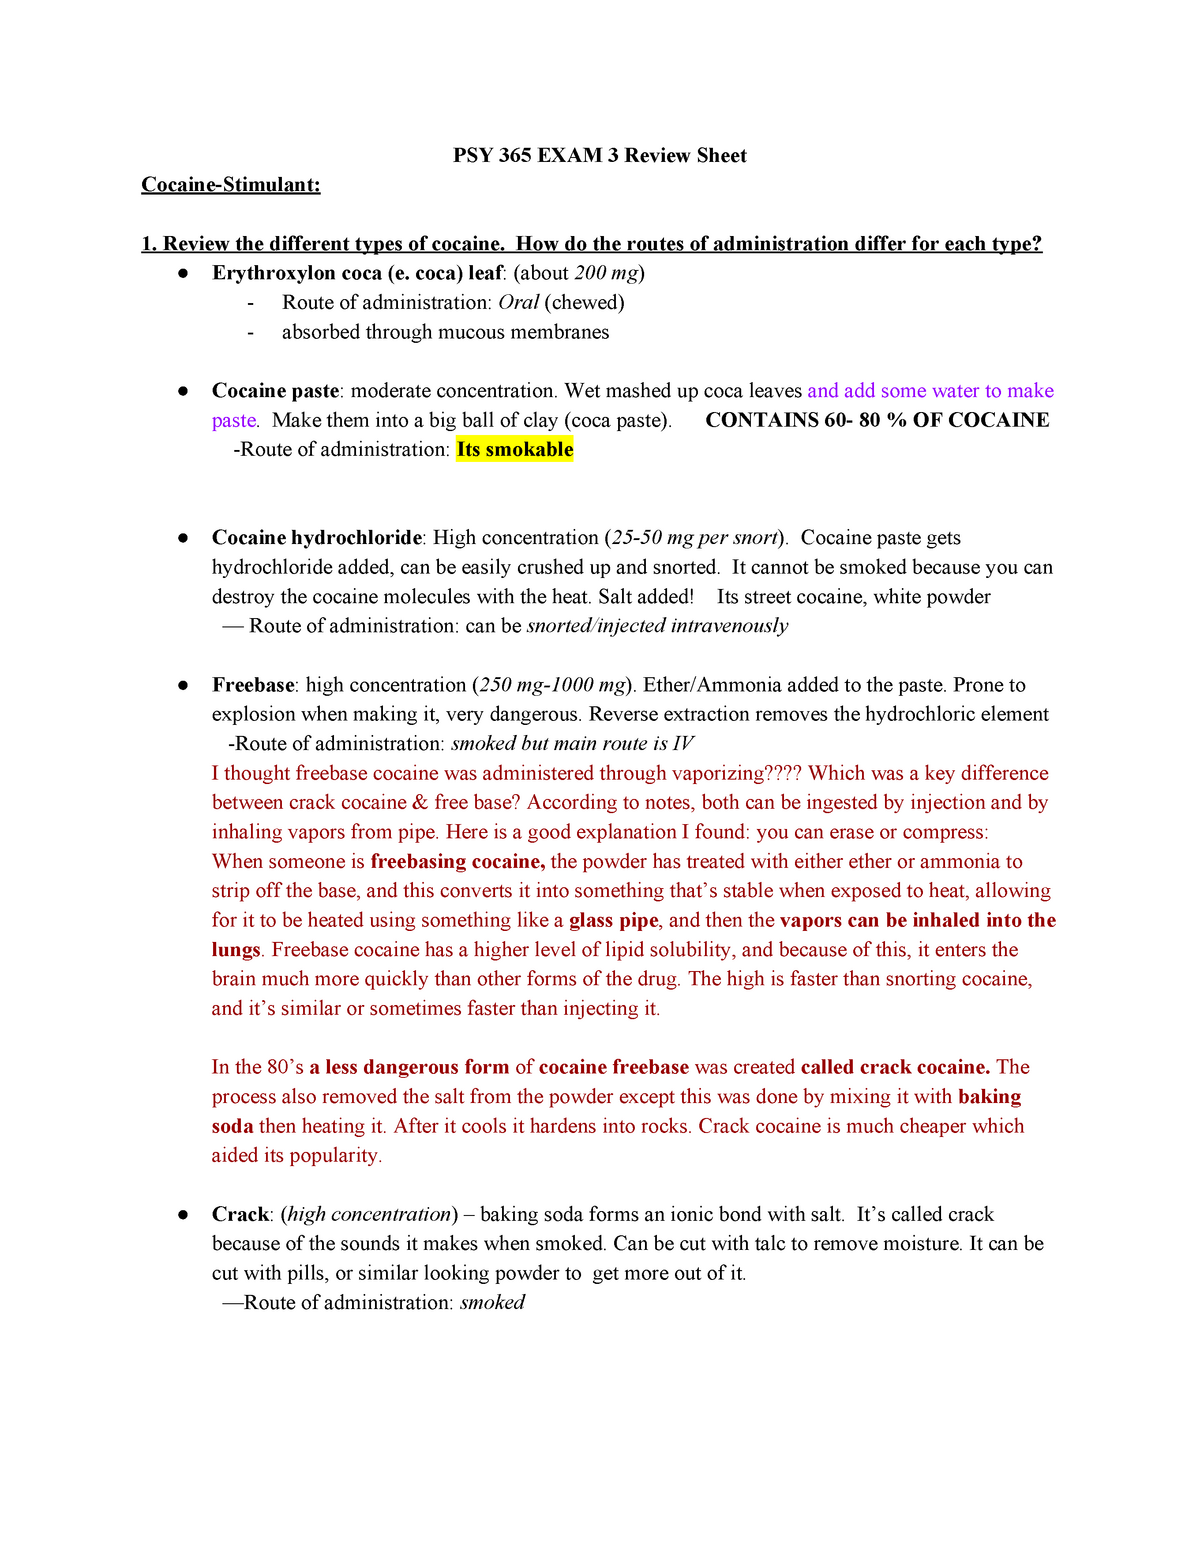 PSY 365 EXAM 3 Review Sheet Study Guide - PSY 365: Drugs and